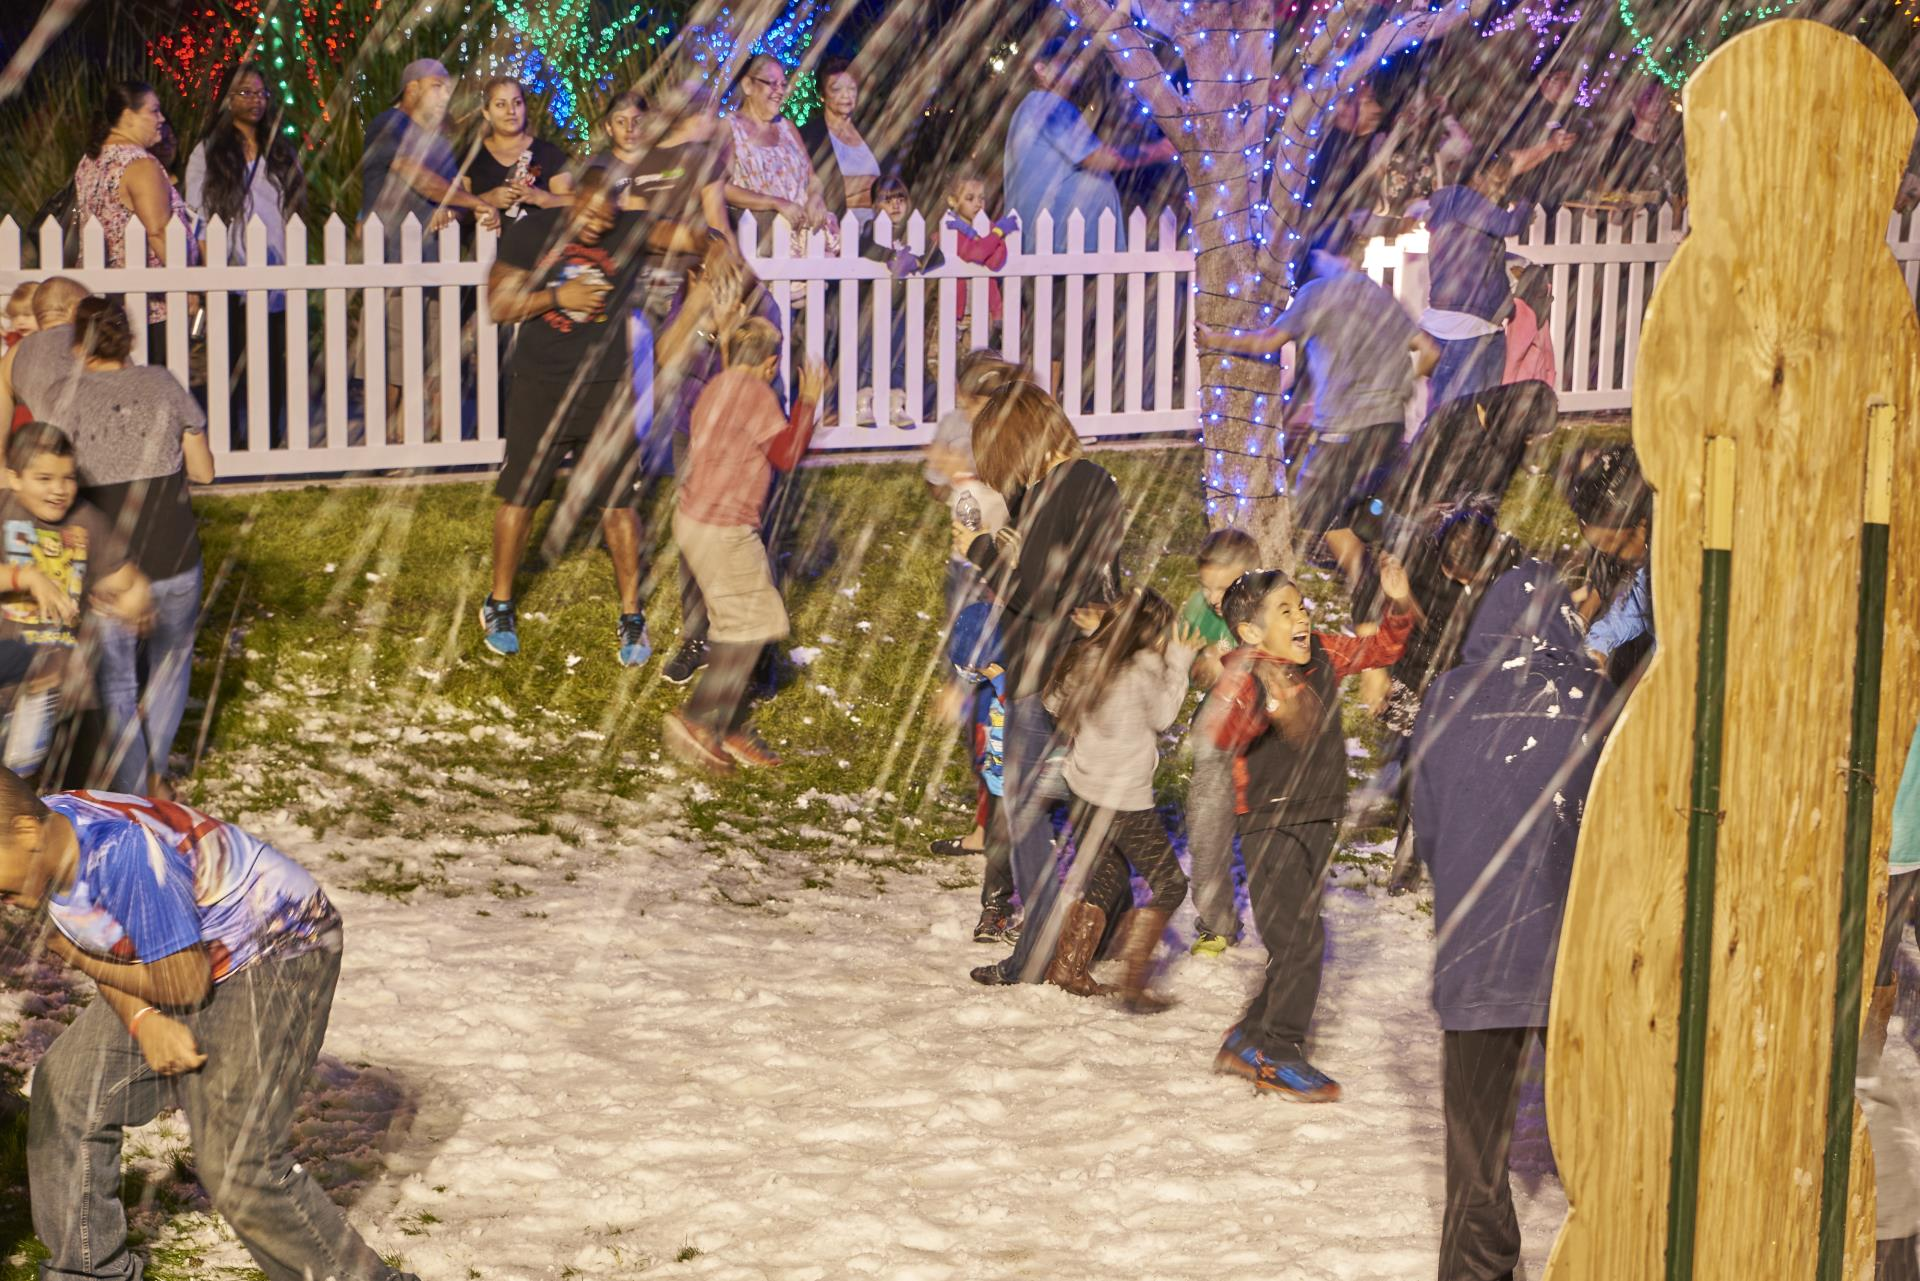 Winterfest, kids playing in snow